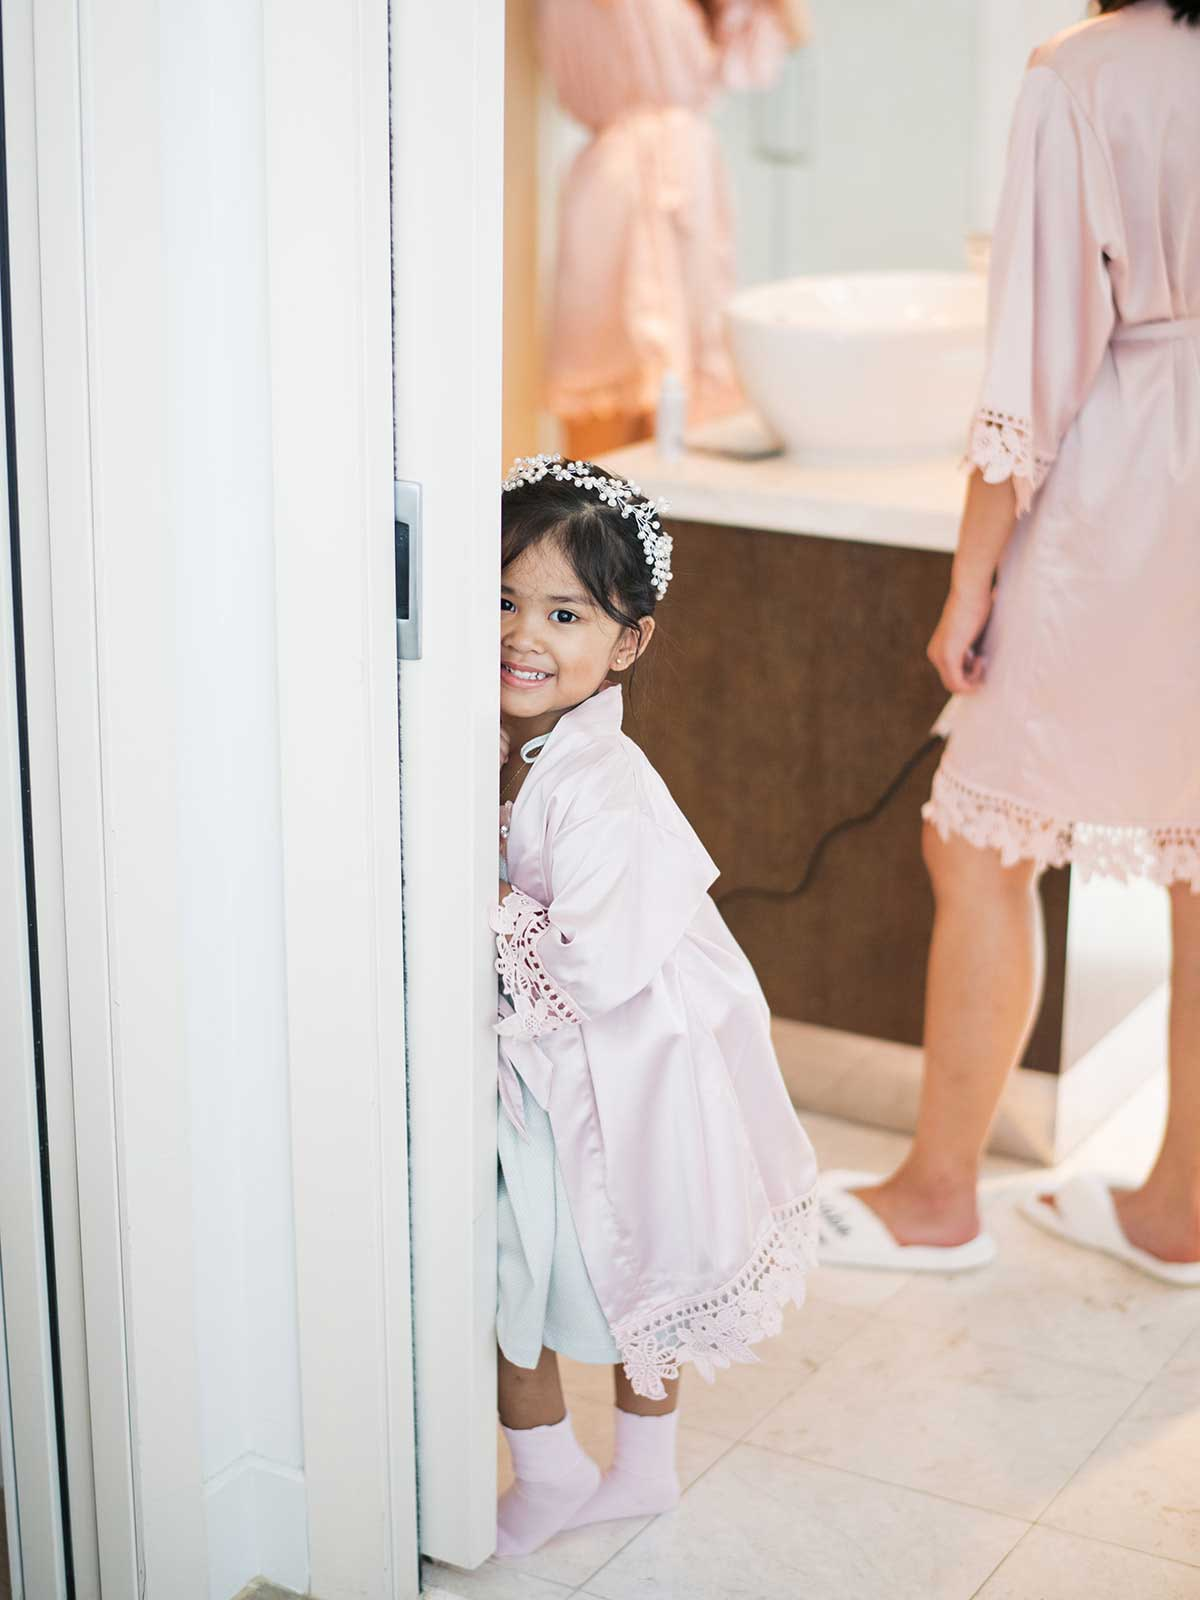 flower girl stands and smiles near door with her robe and flower crown.